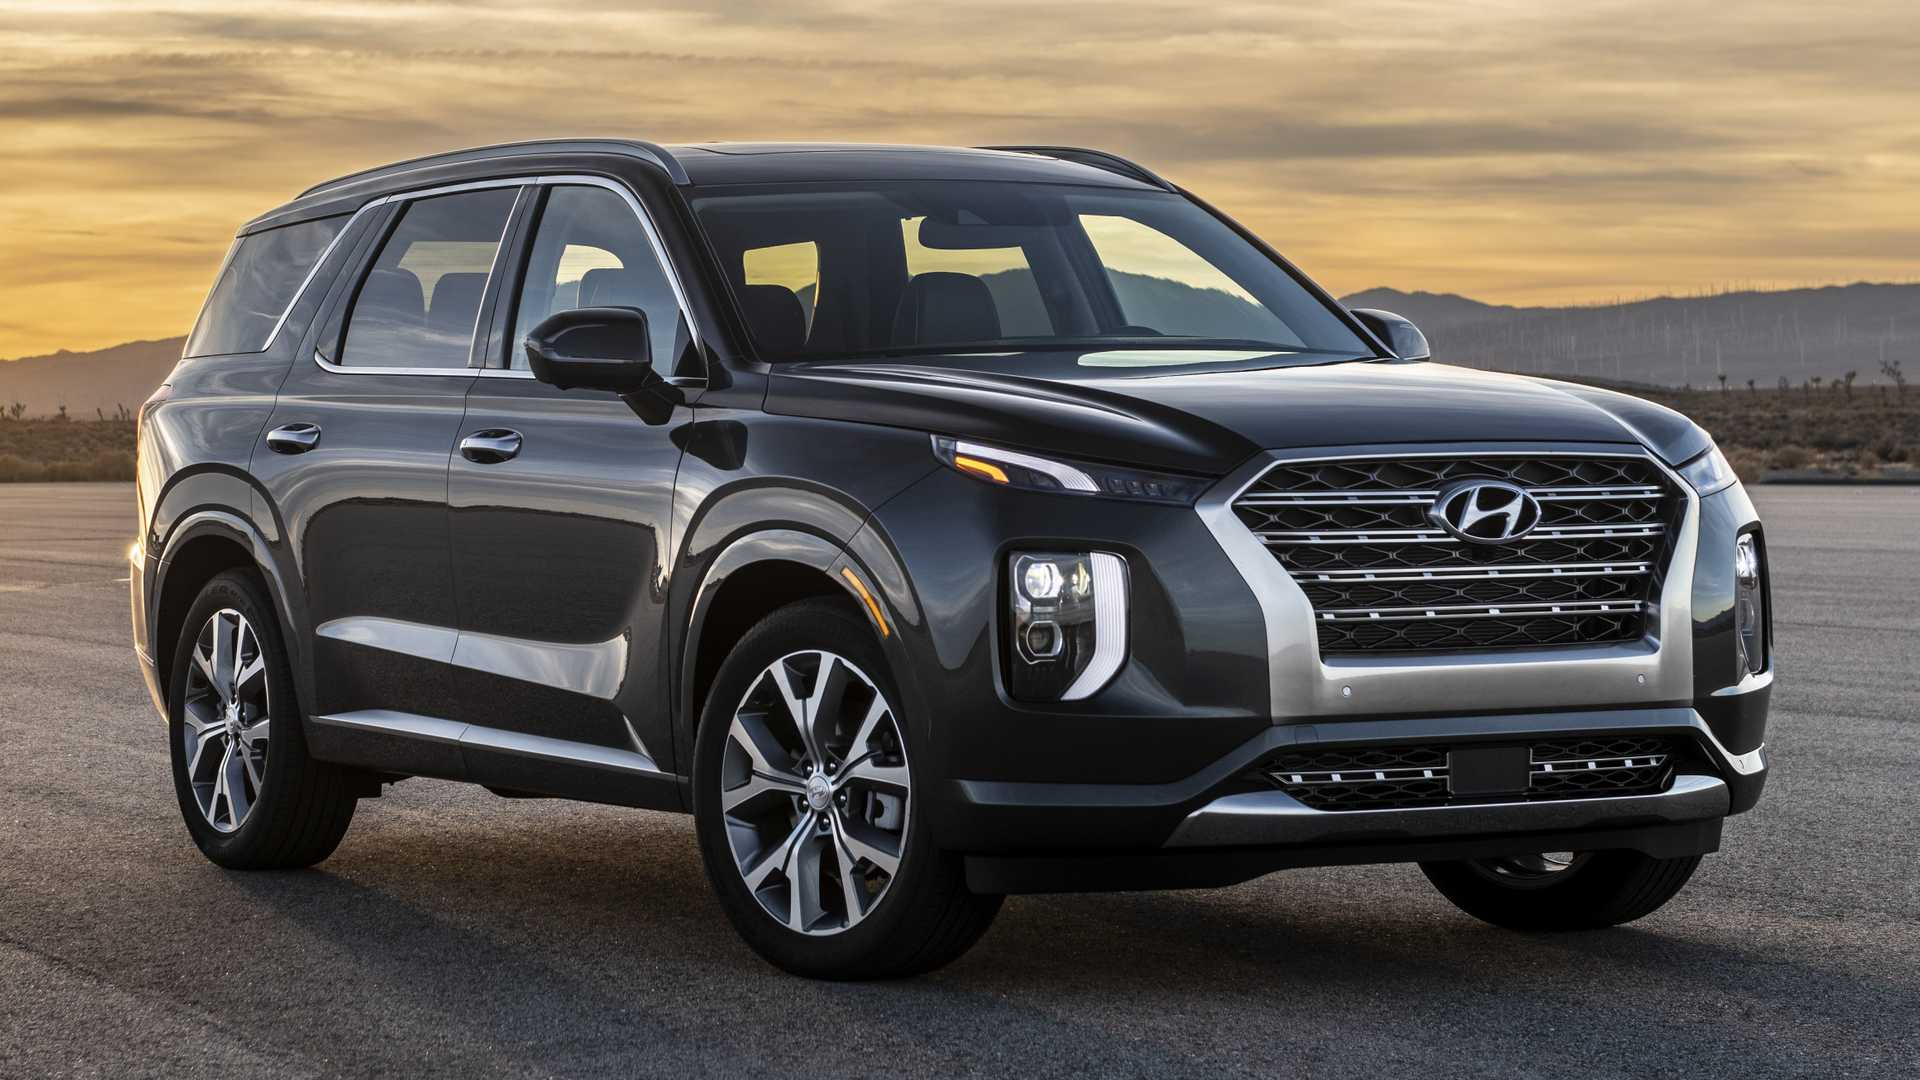 71 A When Will The 2020 Hyundai Palisade Be Available Configurations